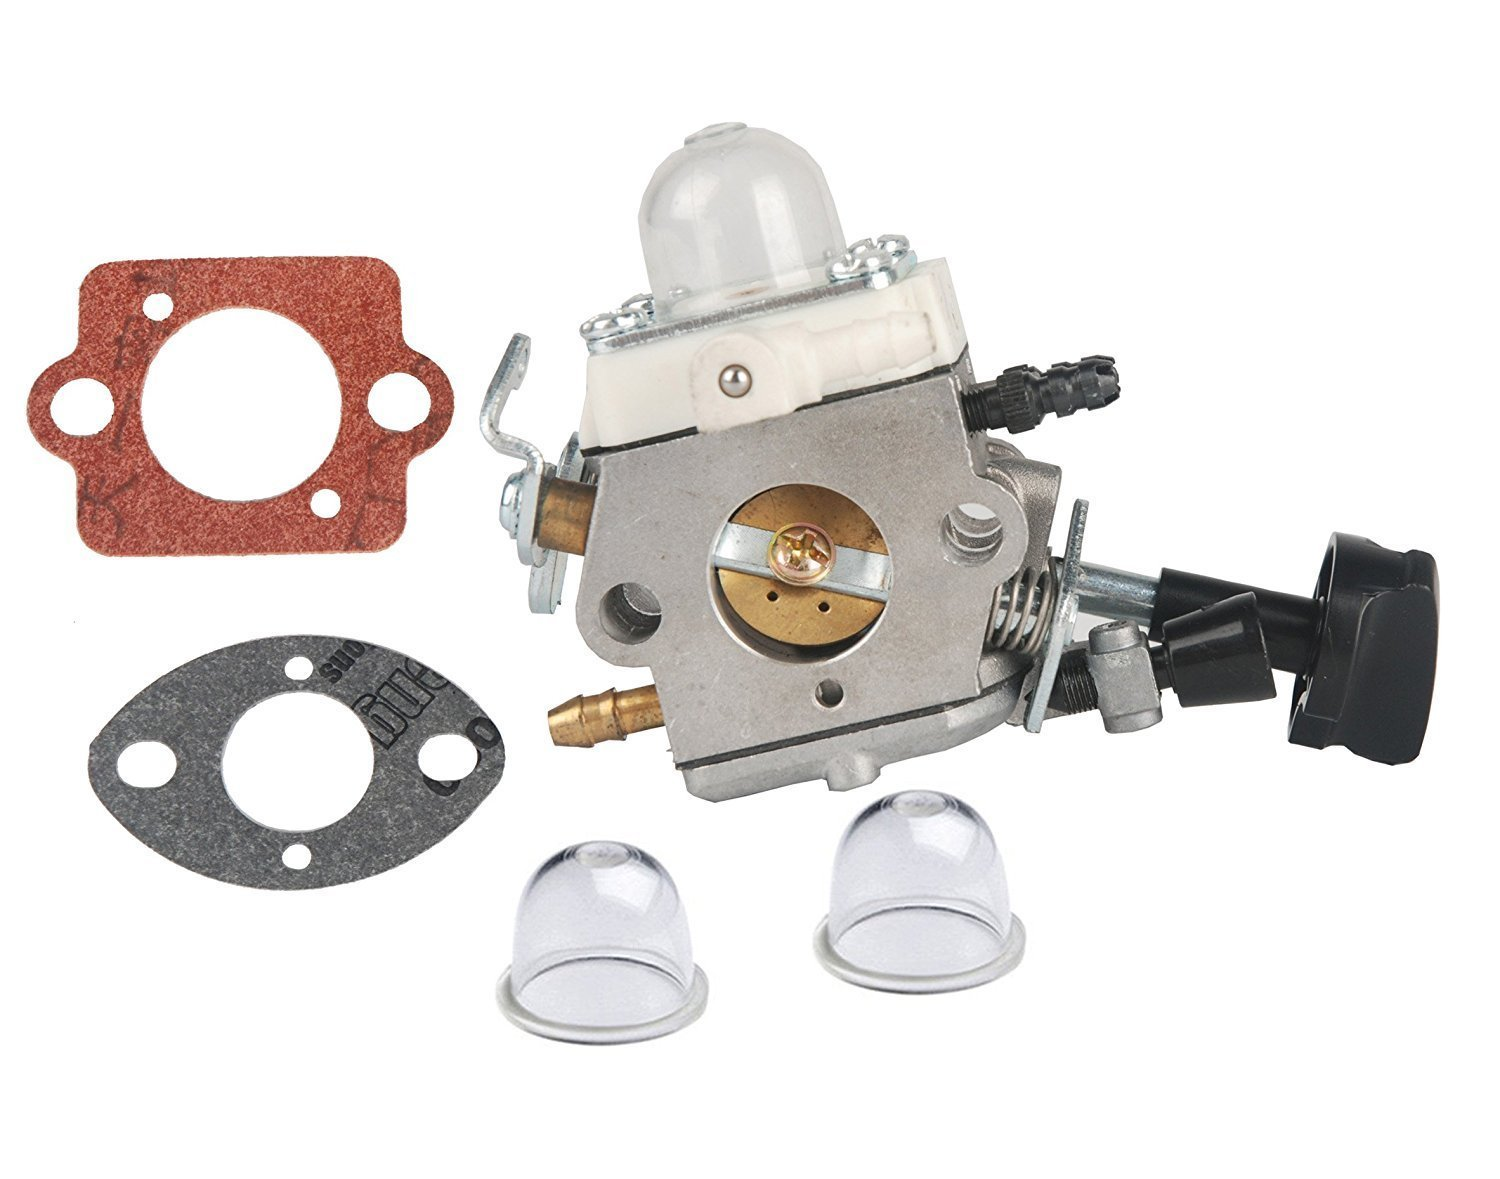 Qauick Carburetor with Gasket For Stihl Blower SH56 SH56C SH86 SH86C BG86 BG86CE BG86Z BG86CEZ Zama C1M-S261B 42411200616 Leaf Blower Carb